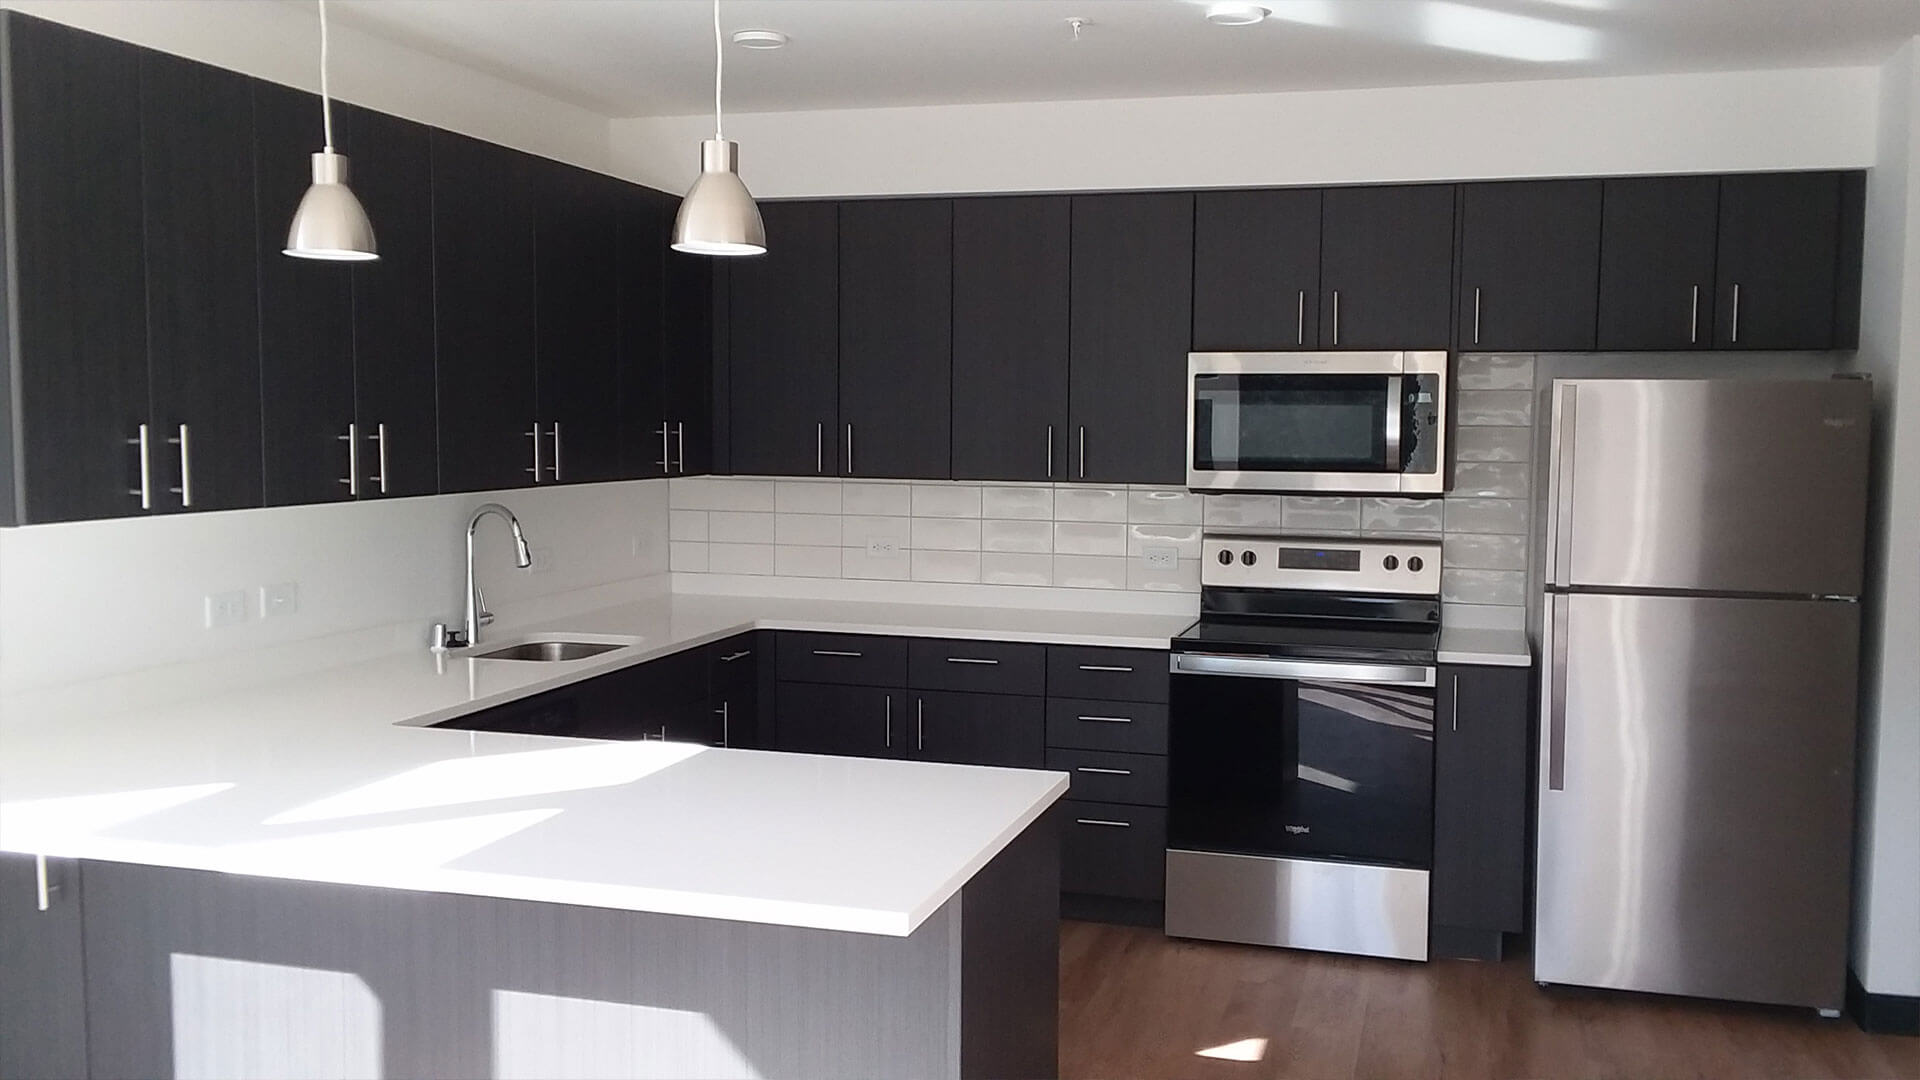 Fully Furnished Kitchen of an Apartment at Stateside